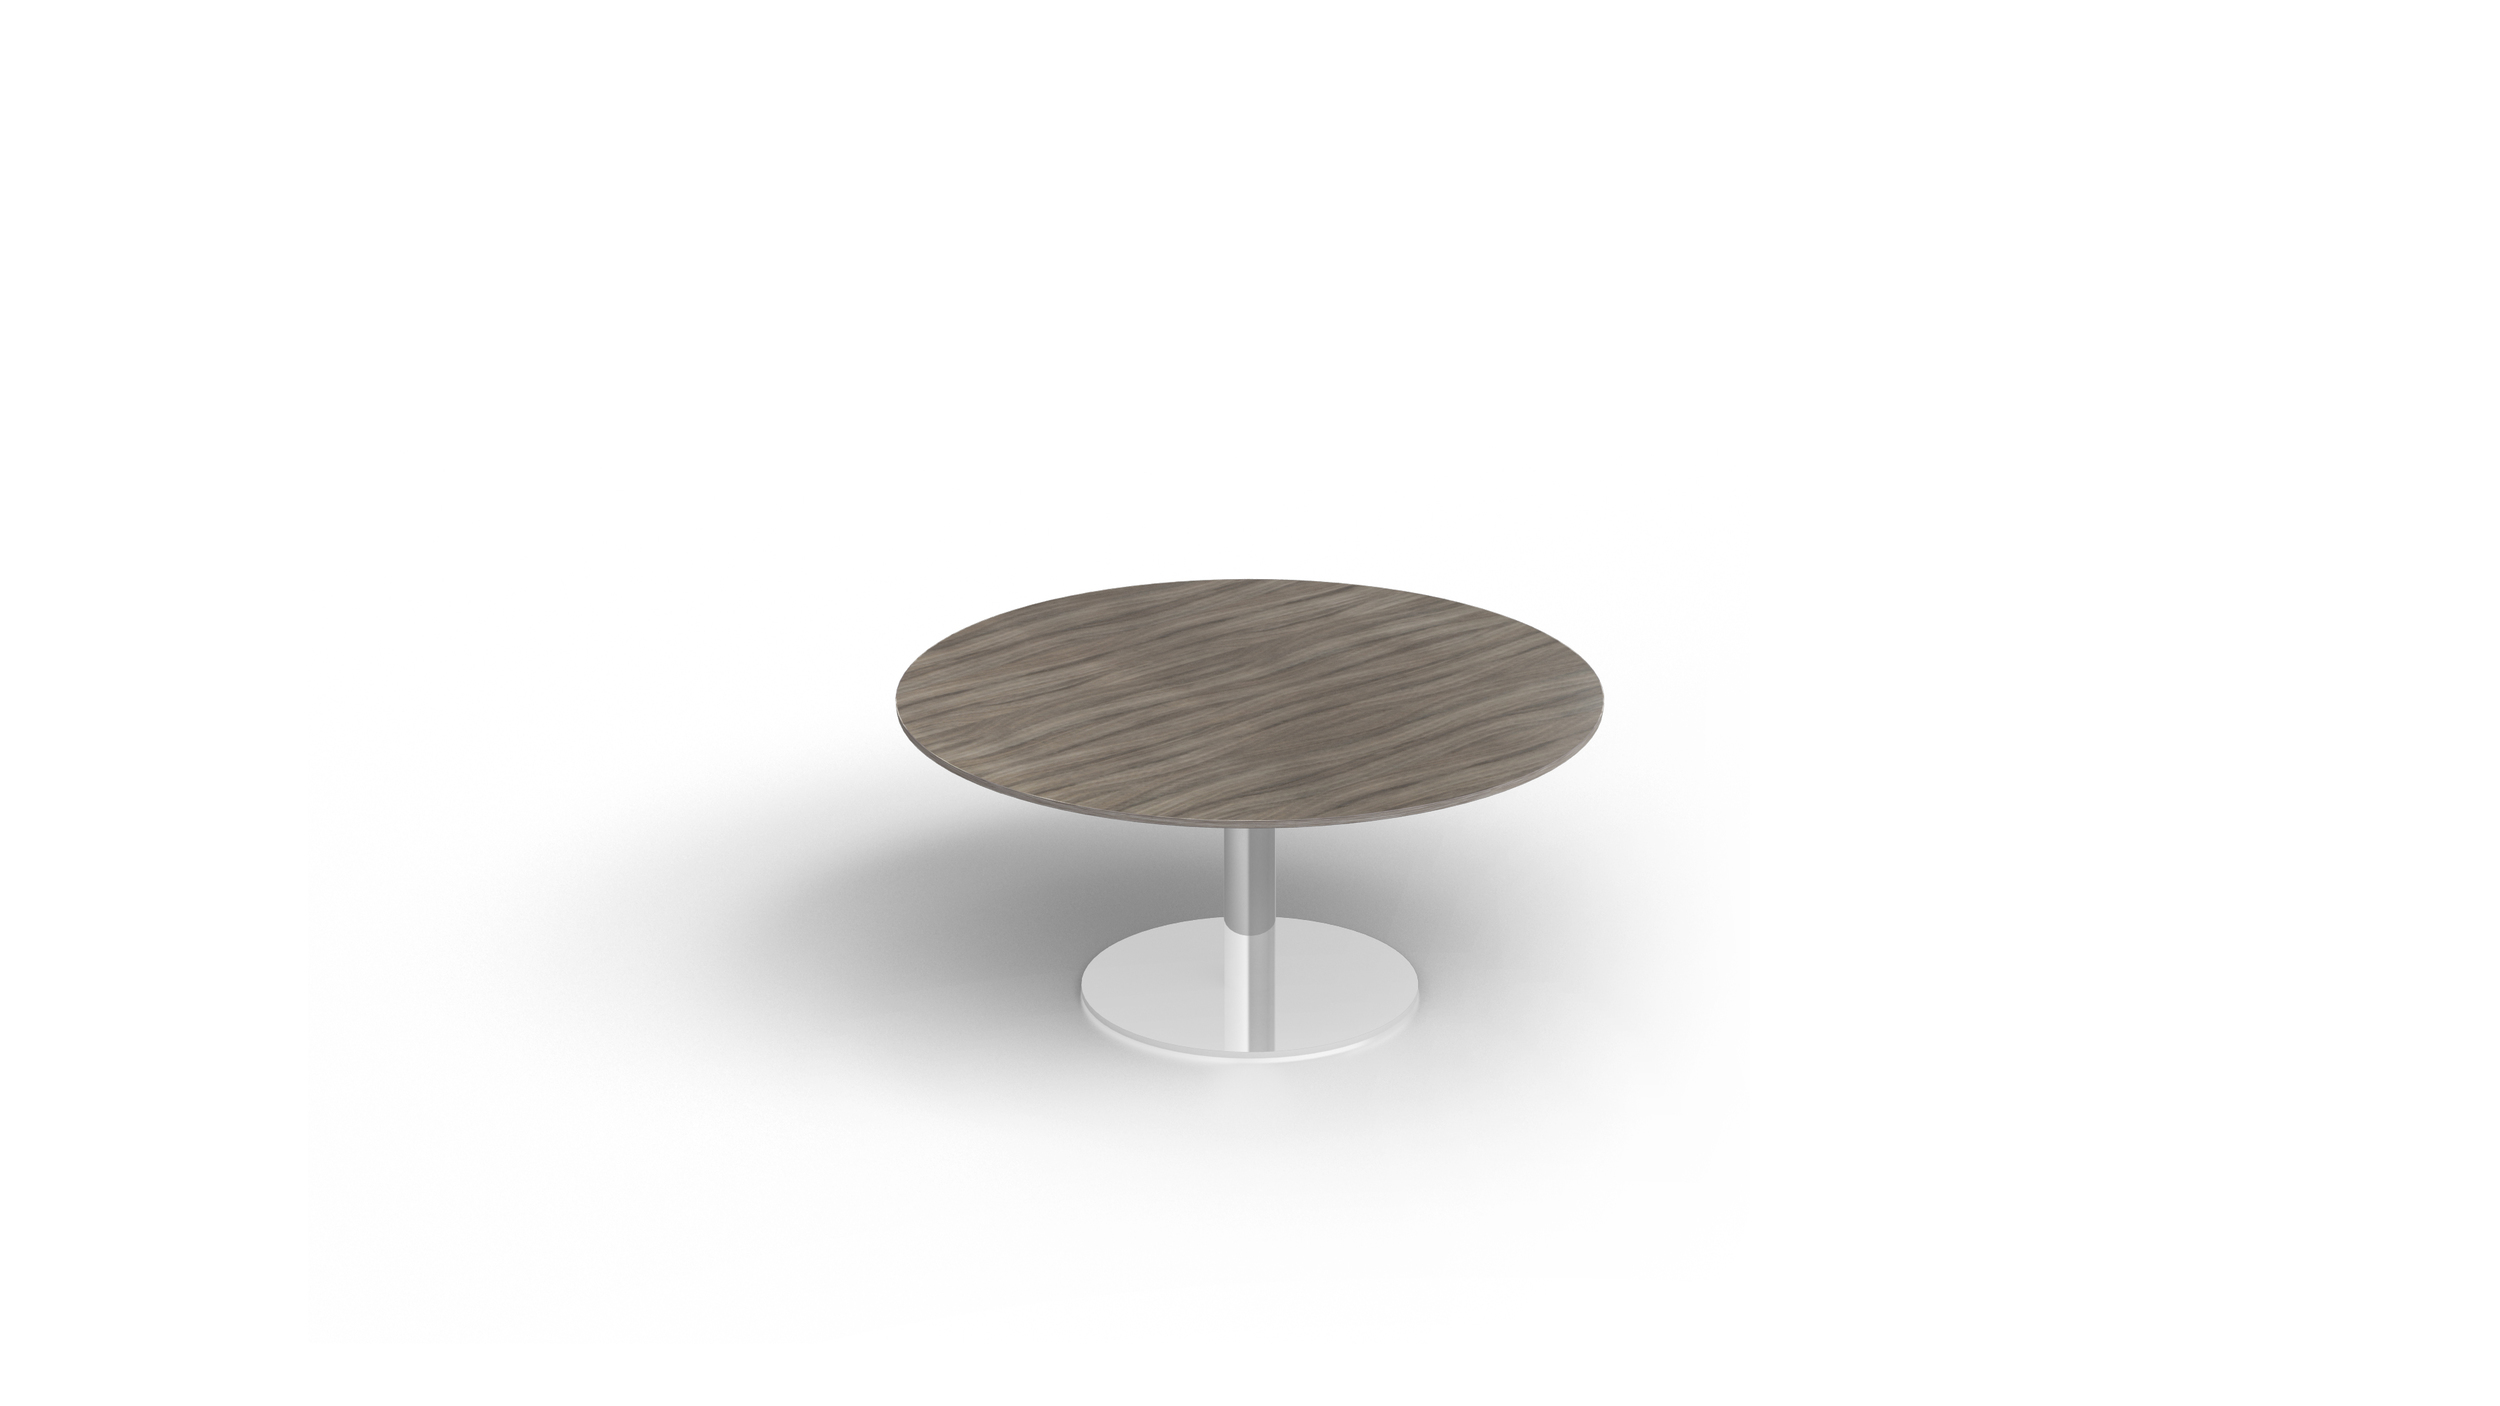 0143 COLUMN TABLE round 160